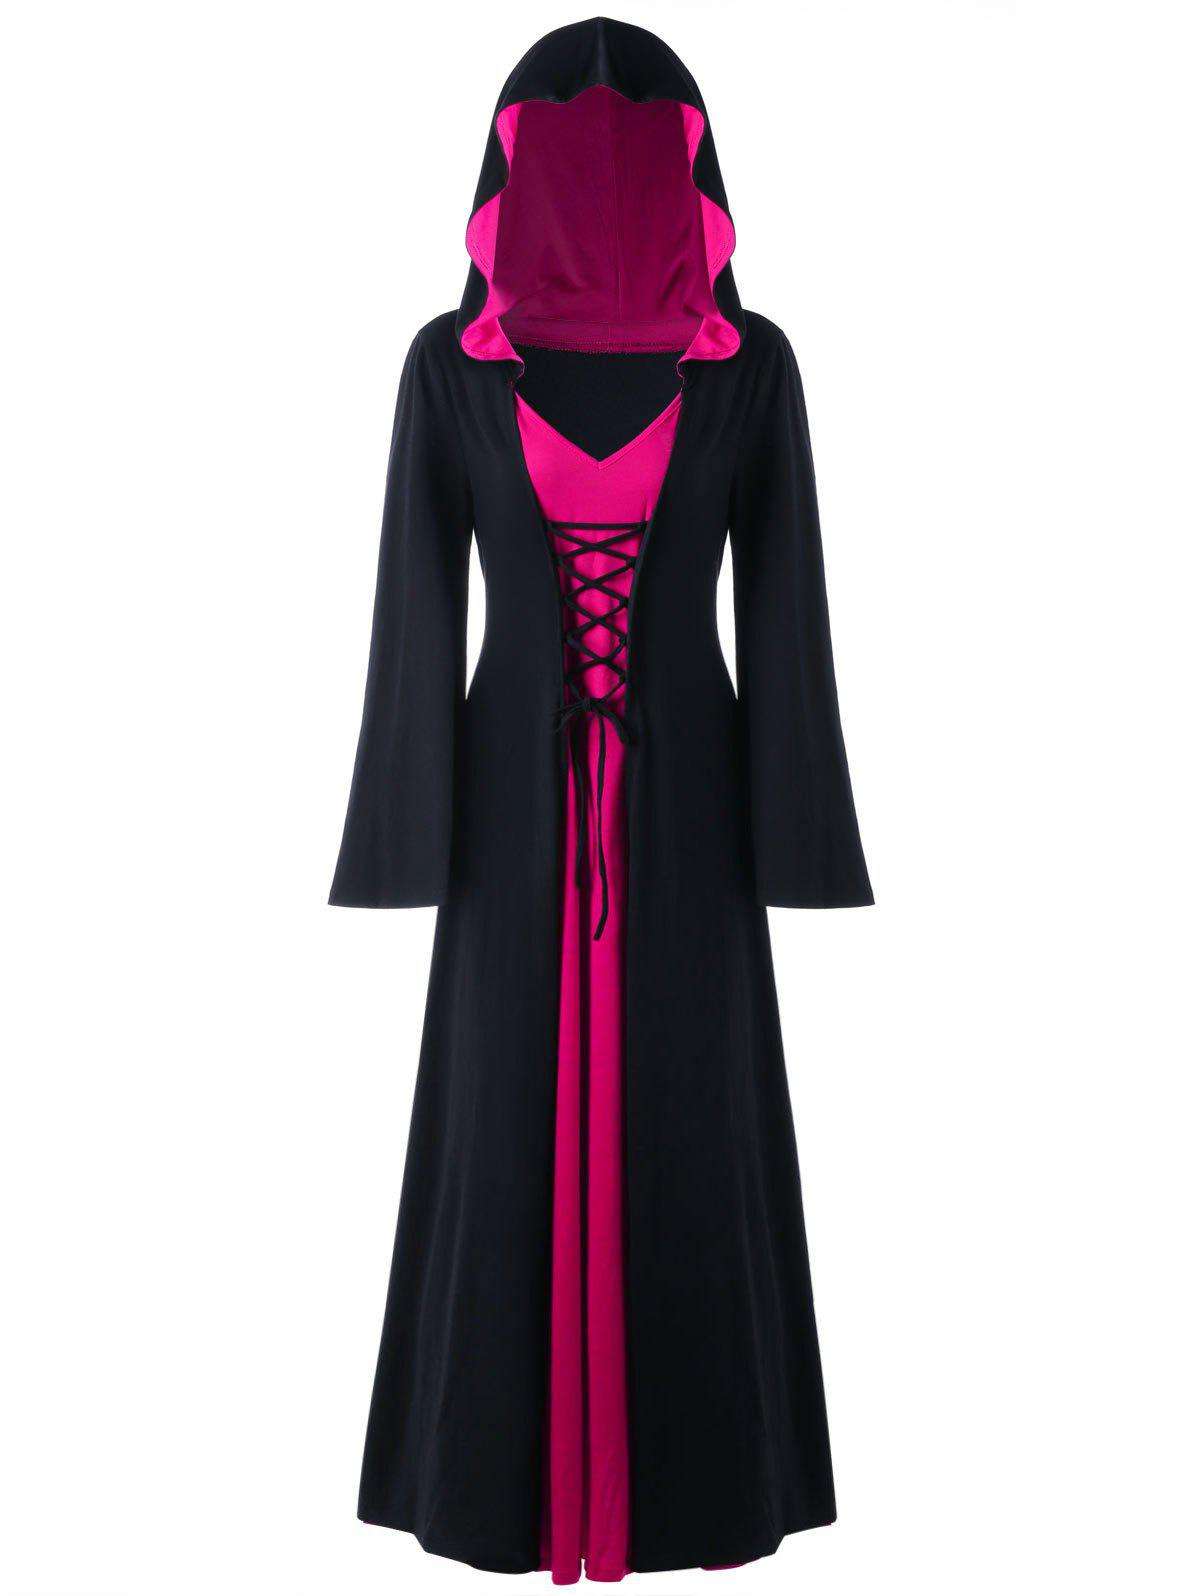 Fancy Halloween Plus Size Lace Up Hooded Maxi Dress